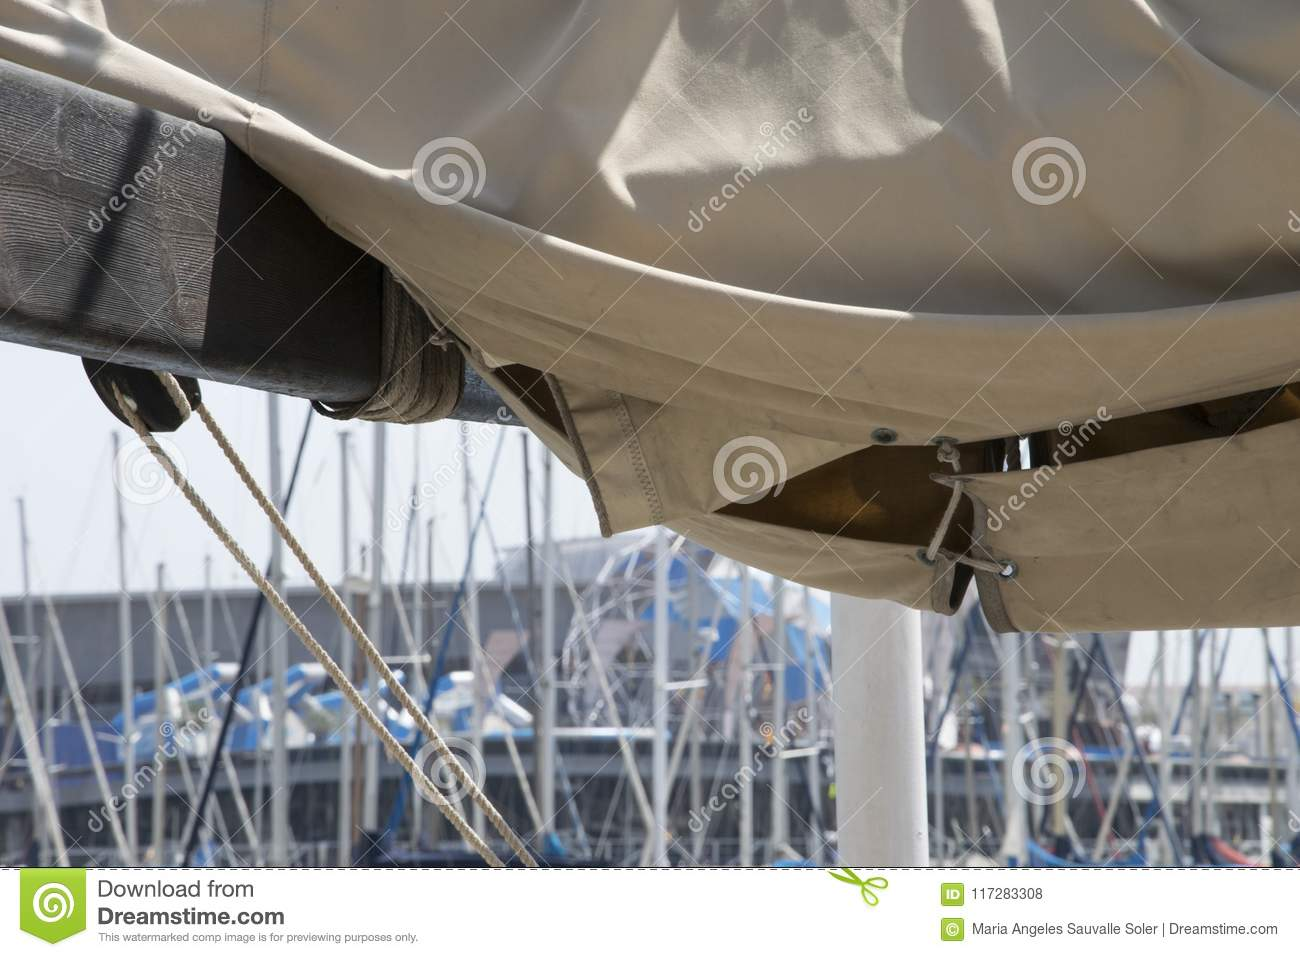 Unfolding the sail stock photo  Image of depart, dock